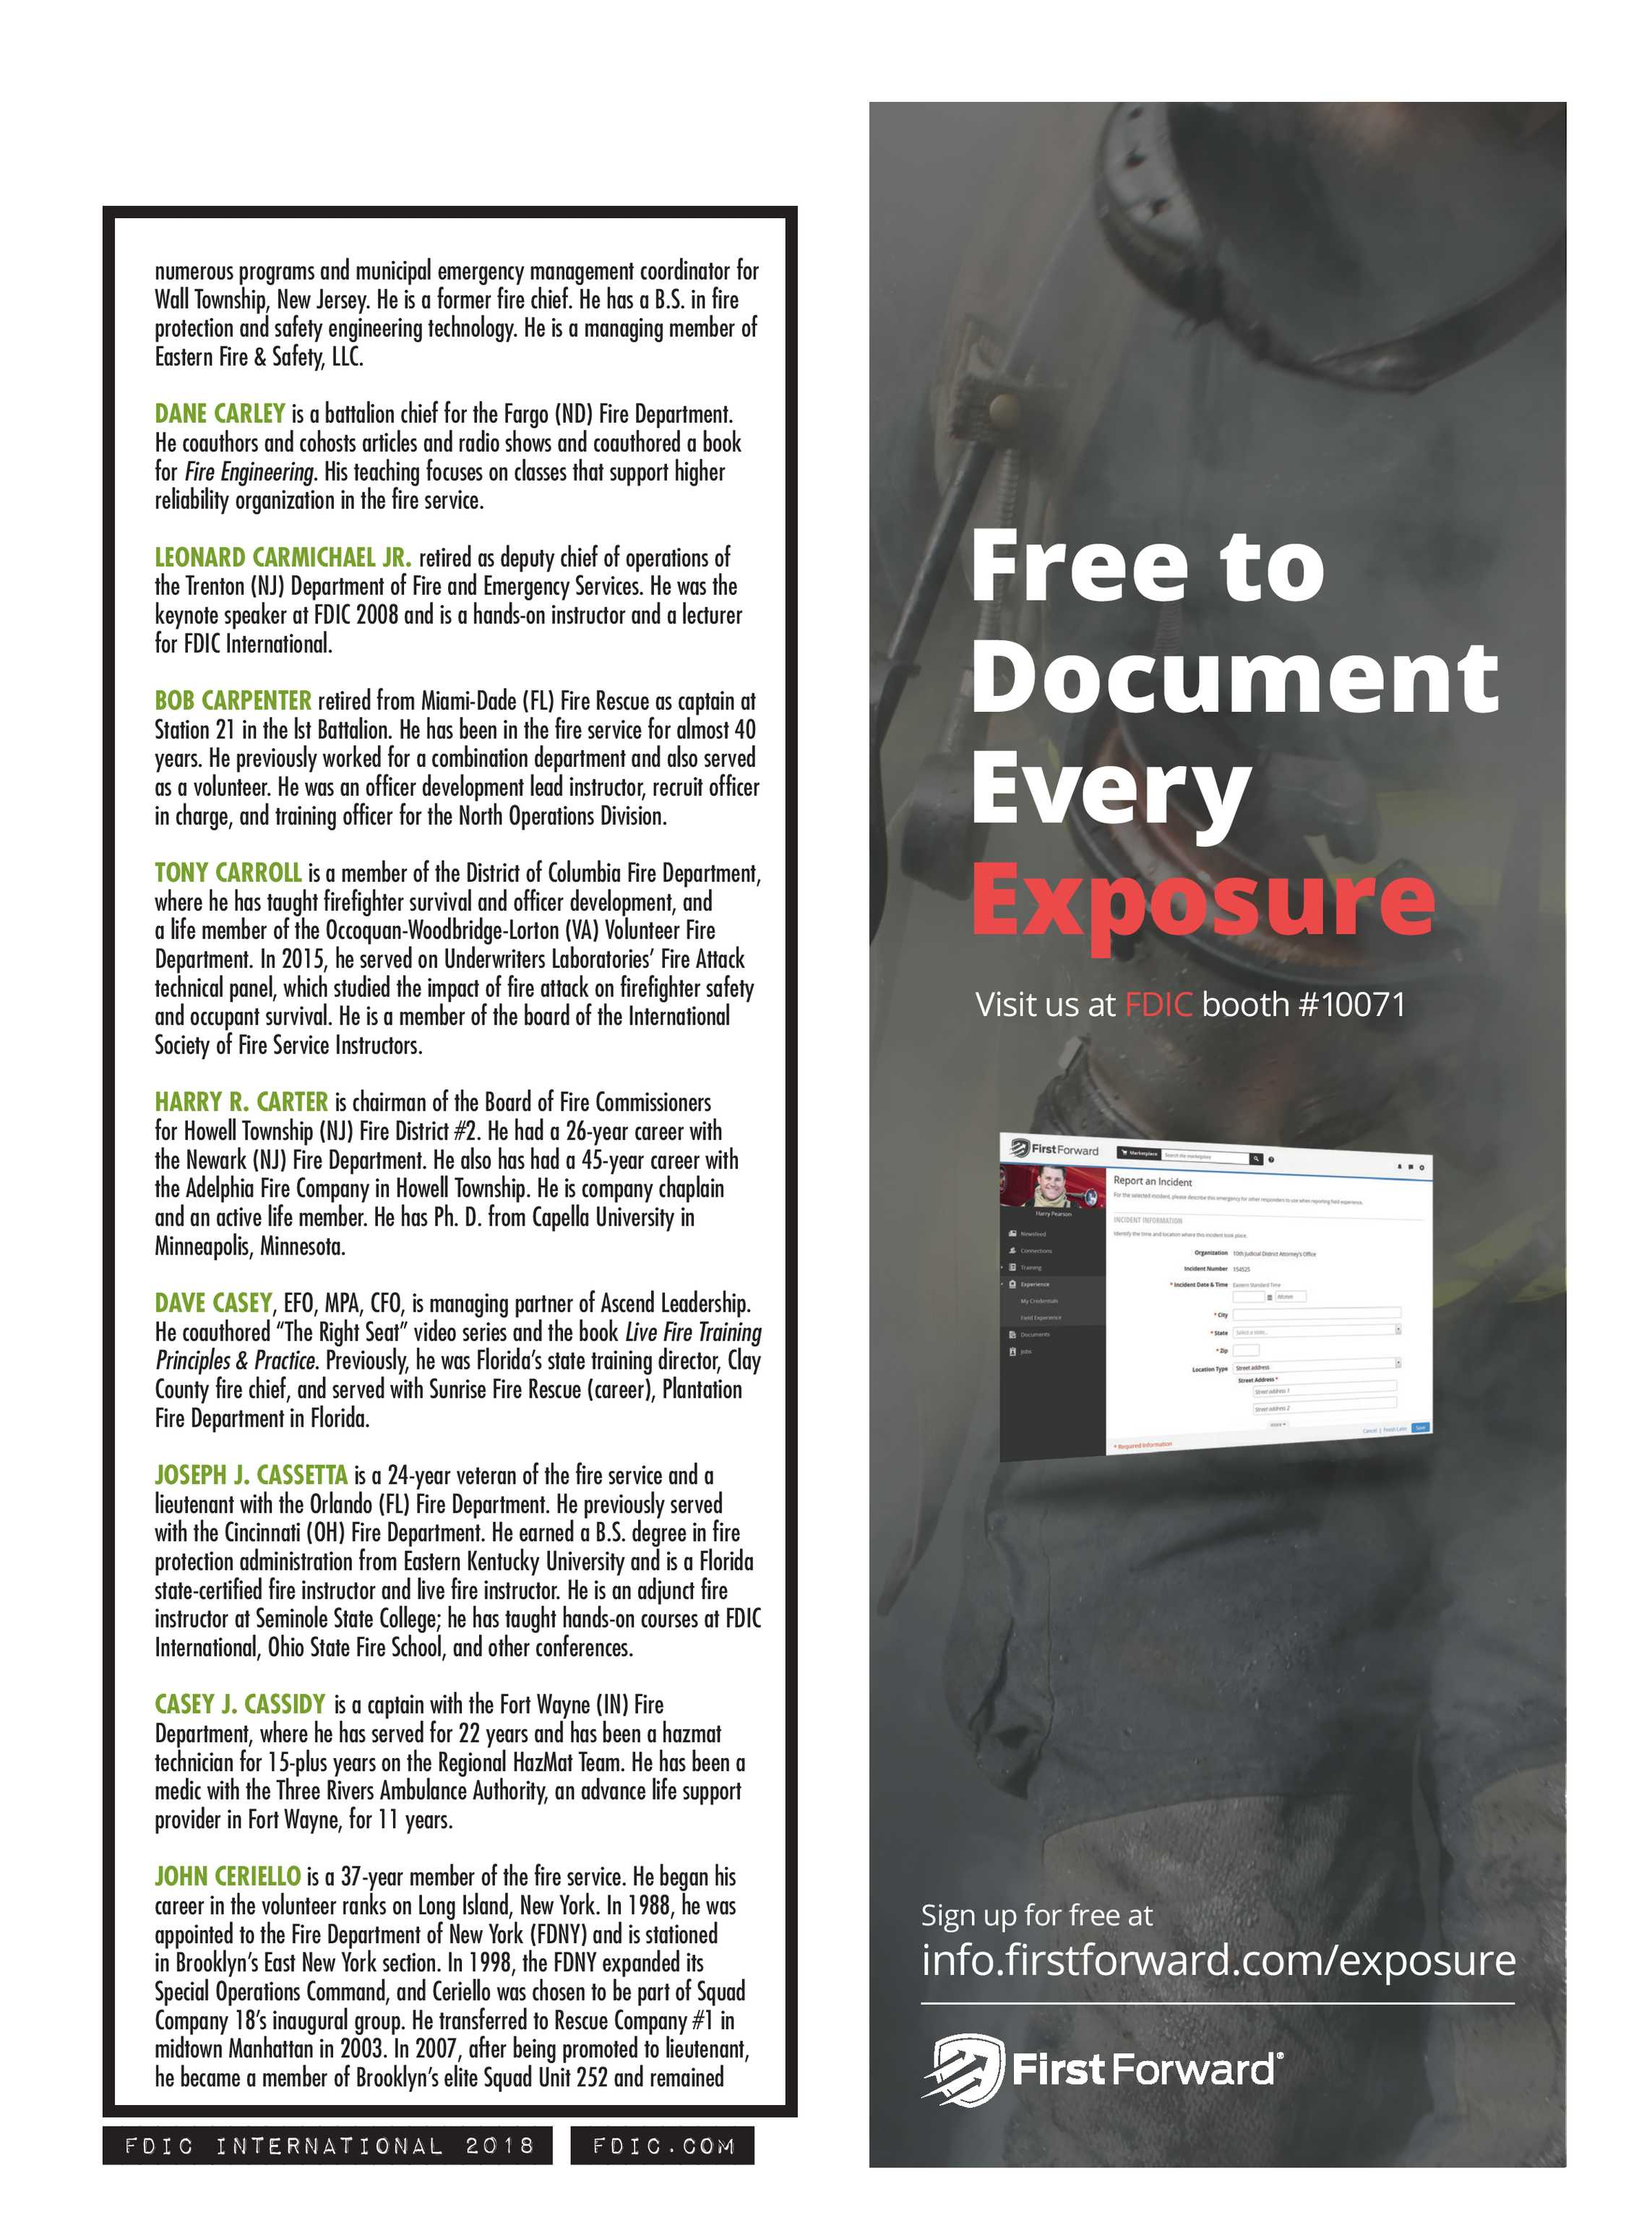 Pennwell Supplements - FDIC 2018 Show Guide - page 129